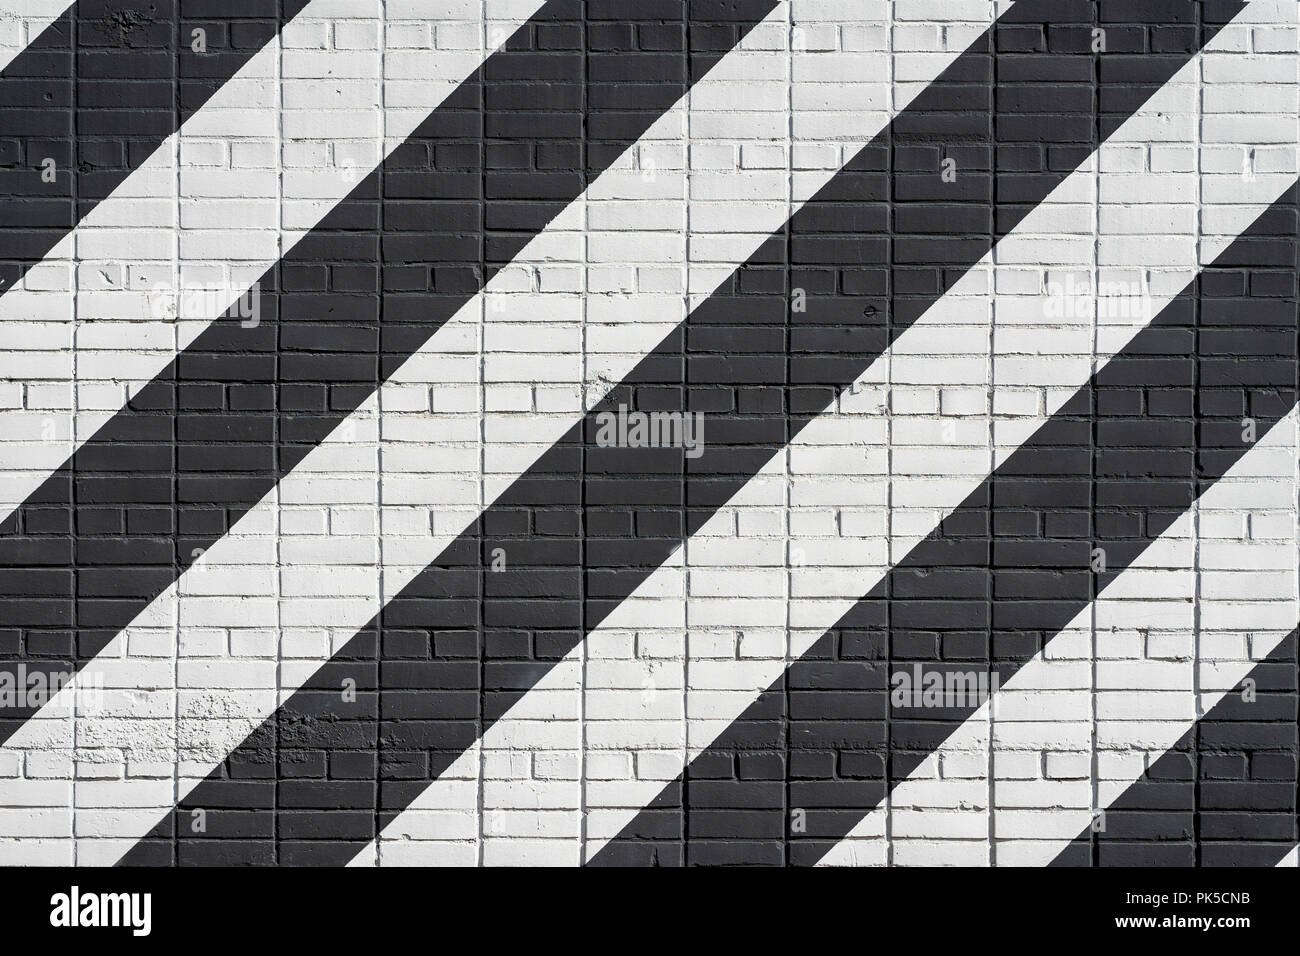 Diagonally painted Black and white bricks wall . Graphic grunge texture of surface, as graffiti. Abstract modern background - Stock Image